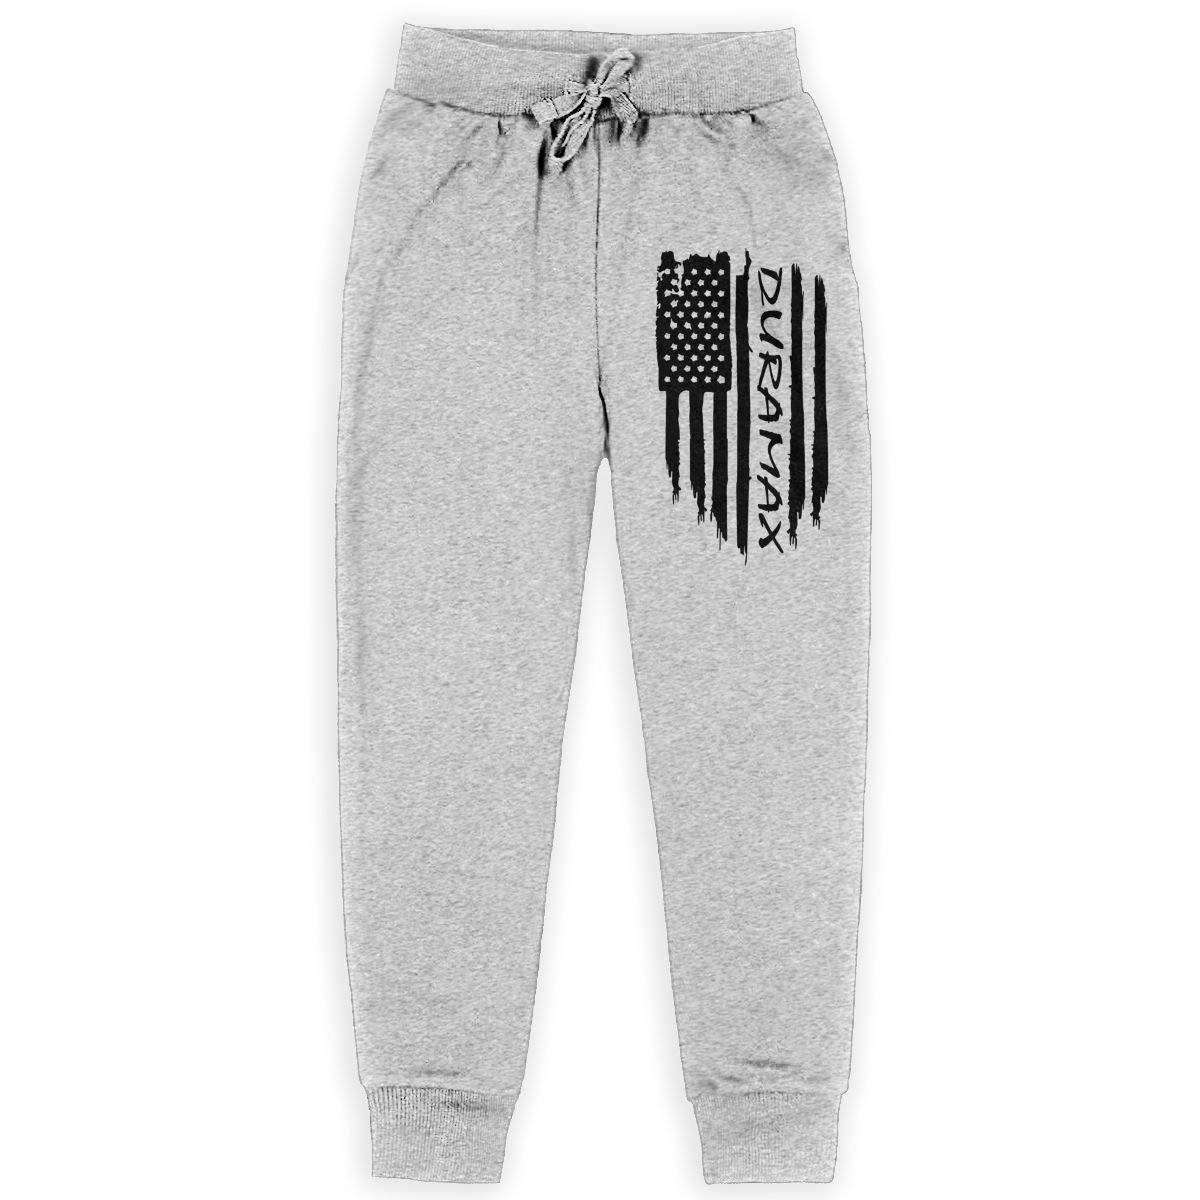 American Flag Duramax Boys Sweatpants Teen Fleece Pants Boys Athletic Pants Gray